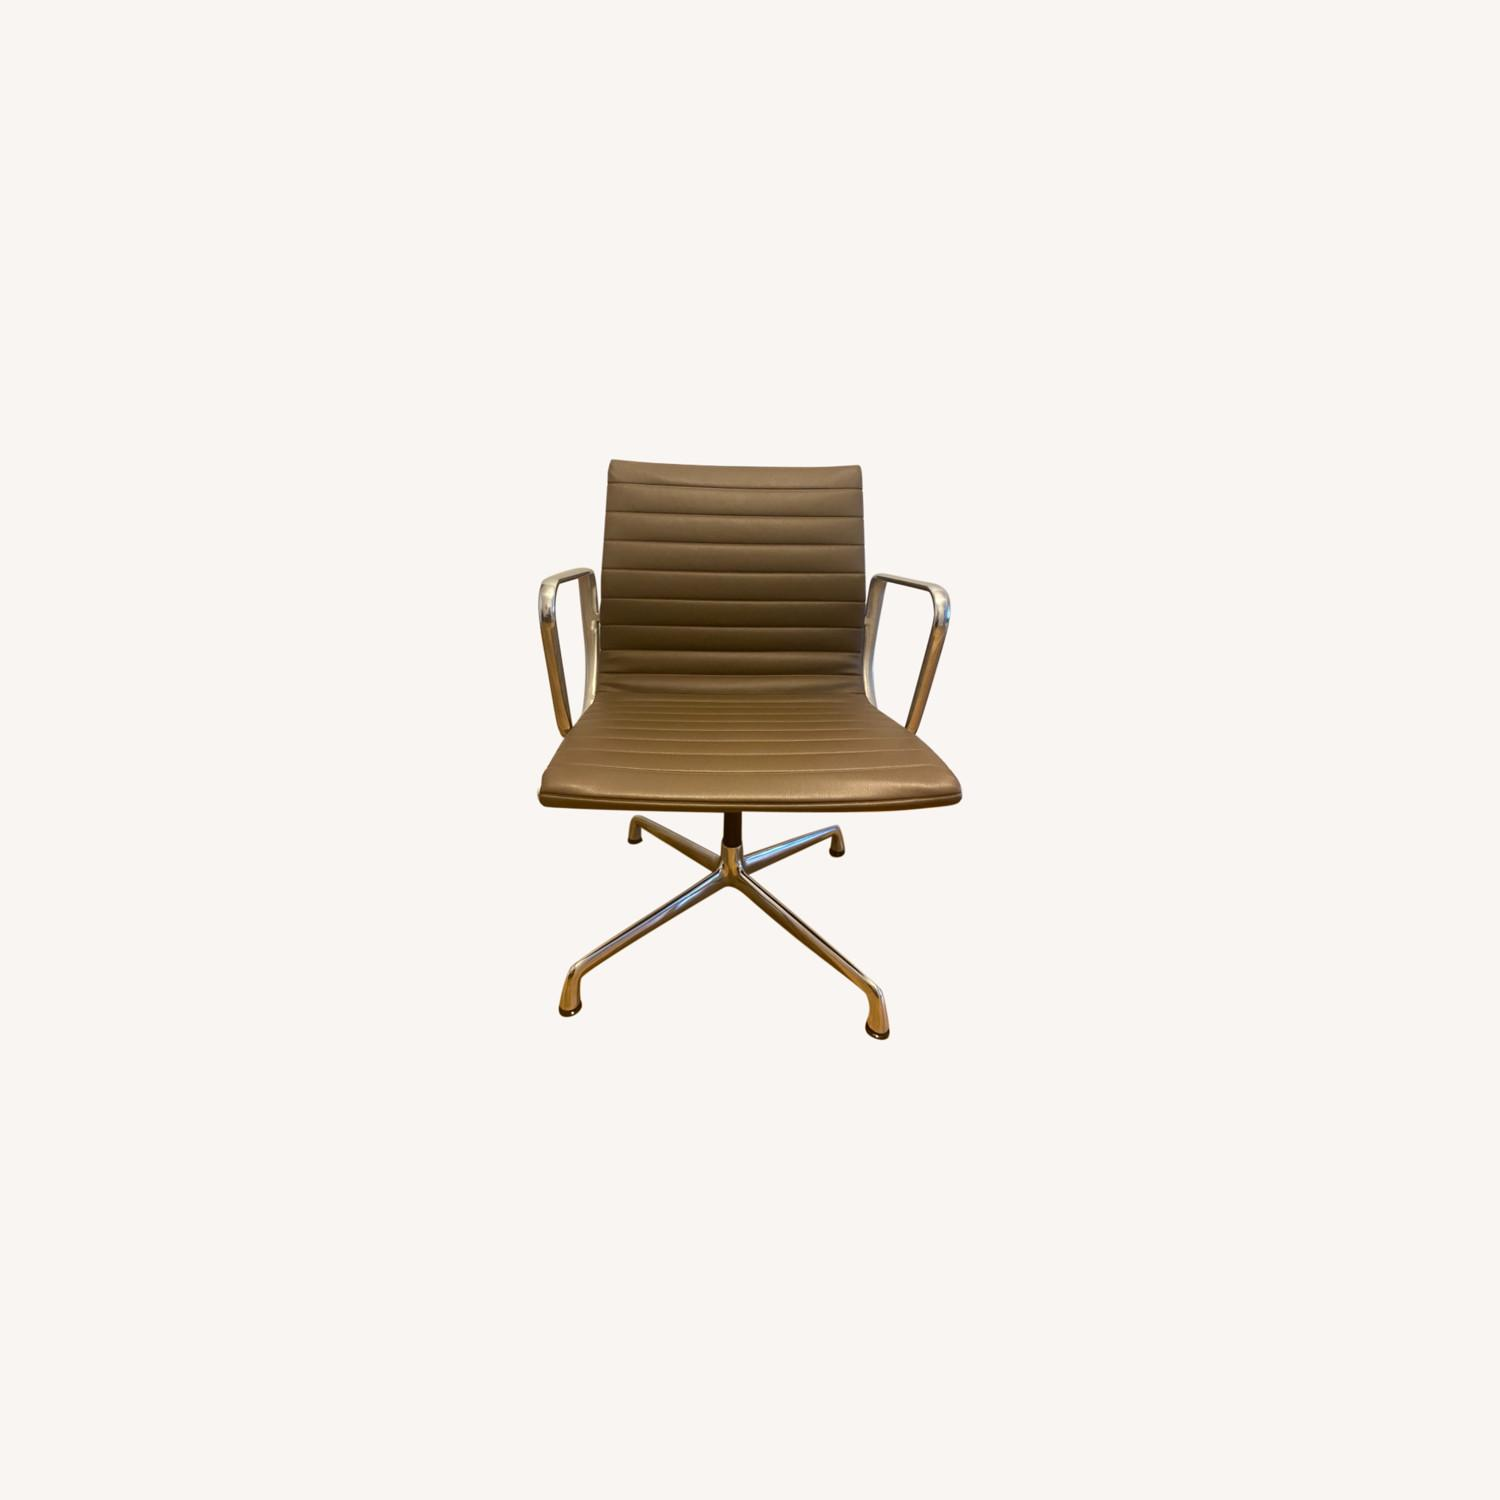 Herman Miller Eames Arm Side Chairs - image-0